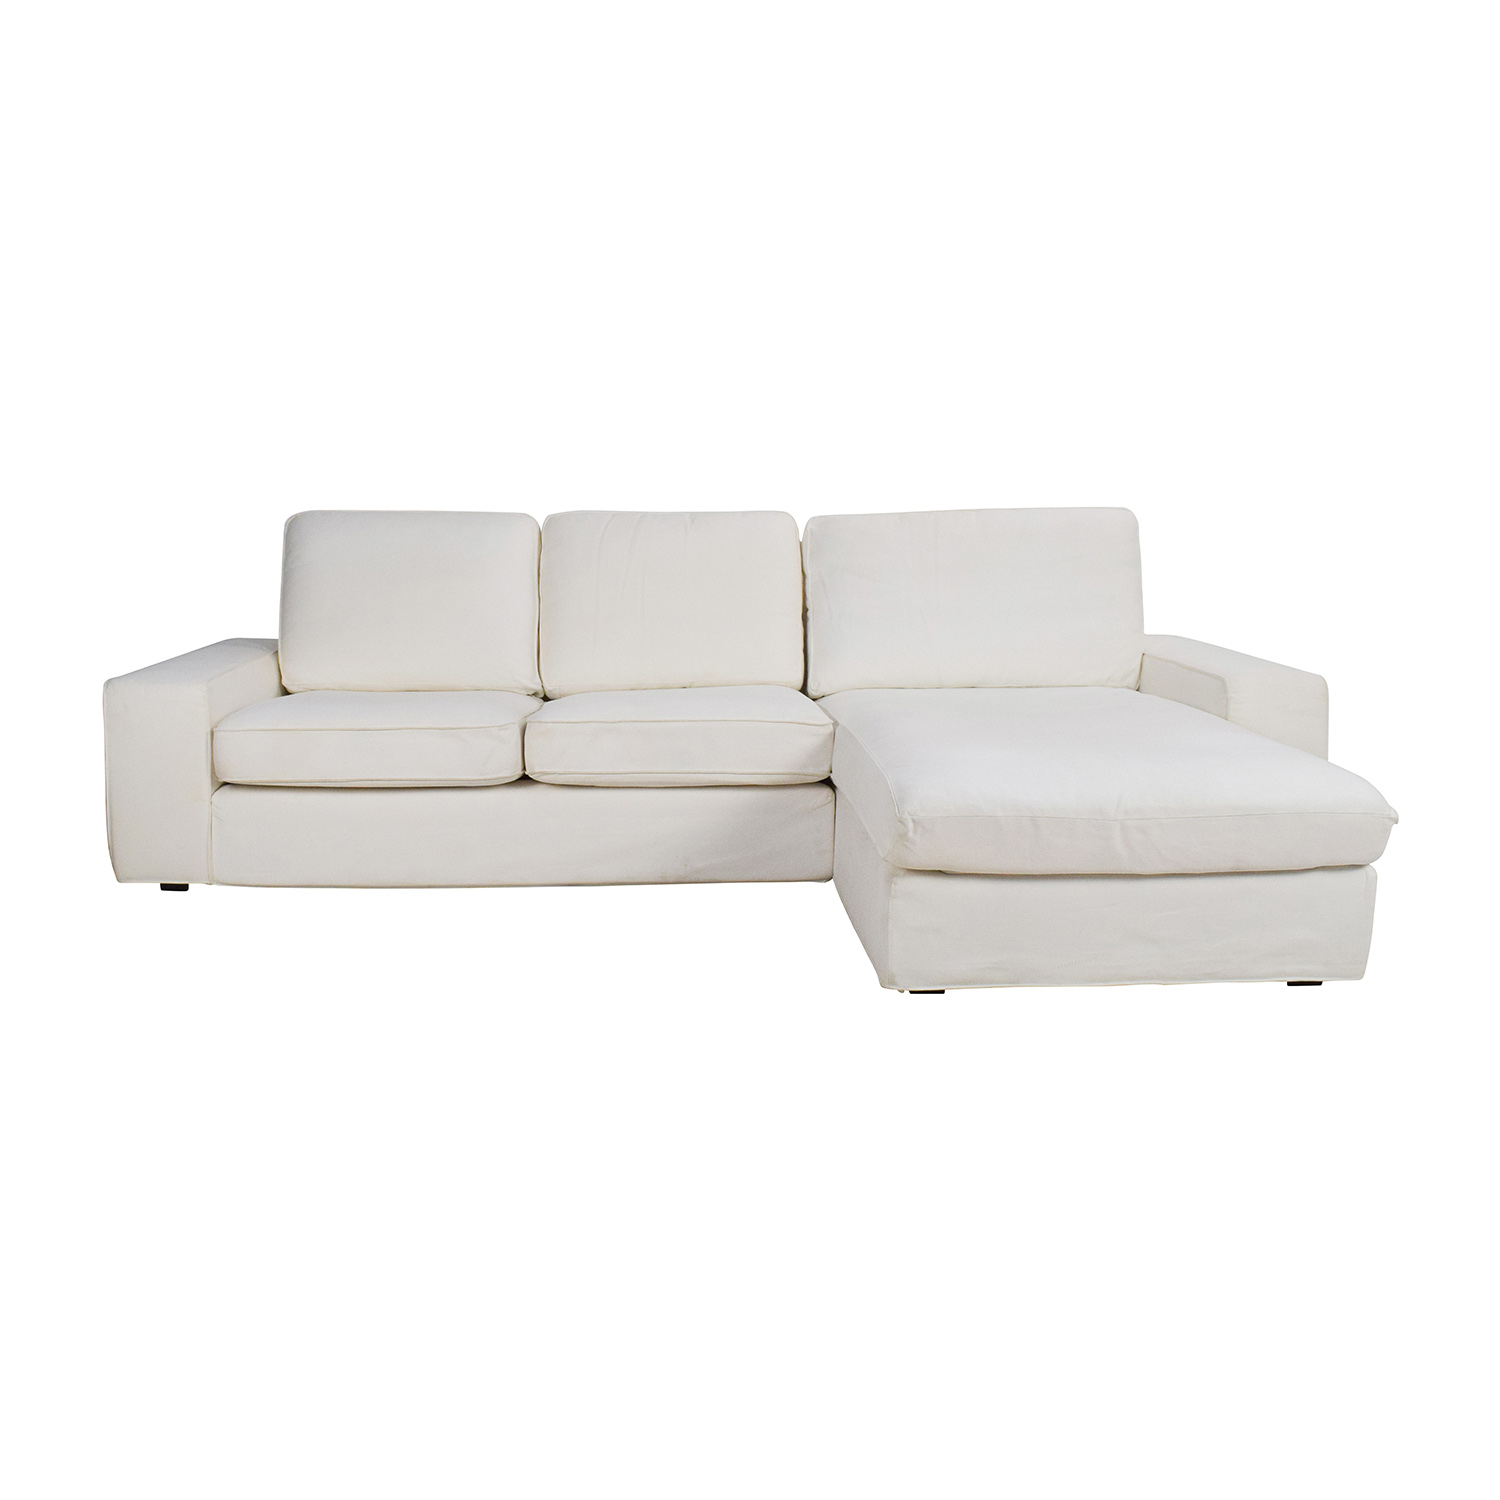 Buy IKEA IKEA Kivik Sofa And Chaise Online ...